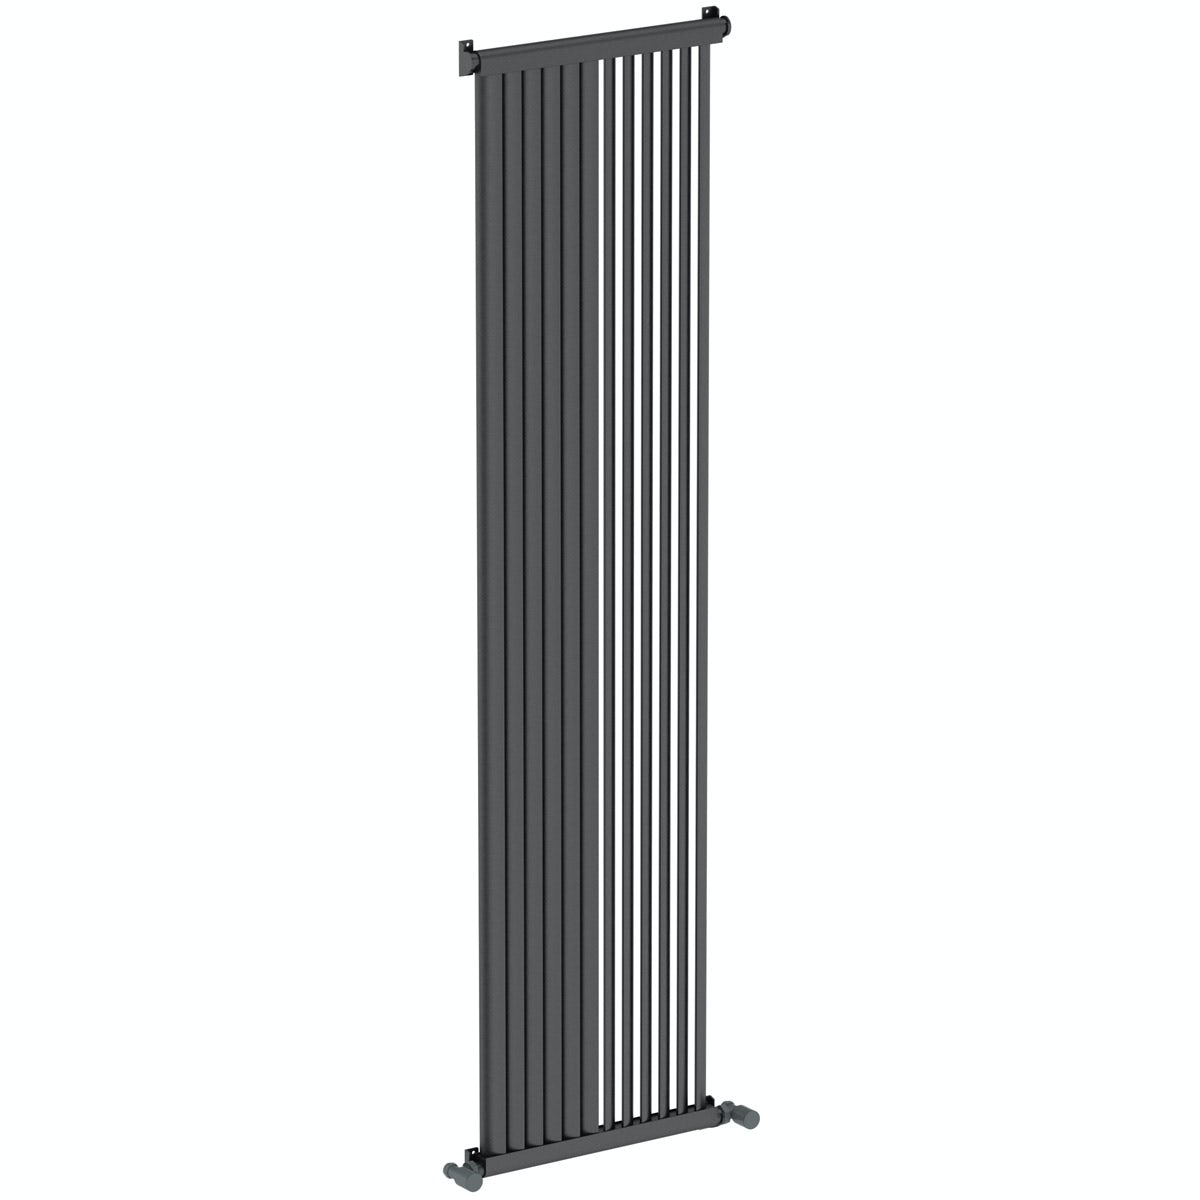 Mode Zephyra anthracite vertical radiator 1800 x 468